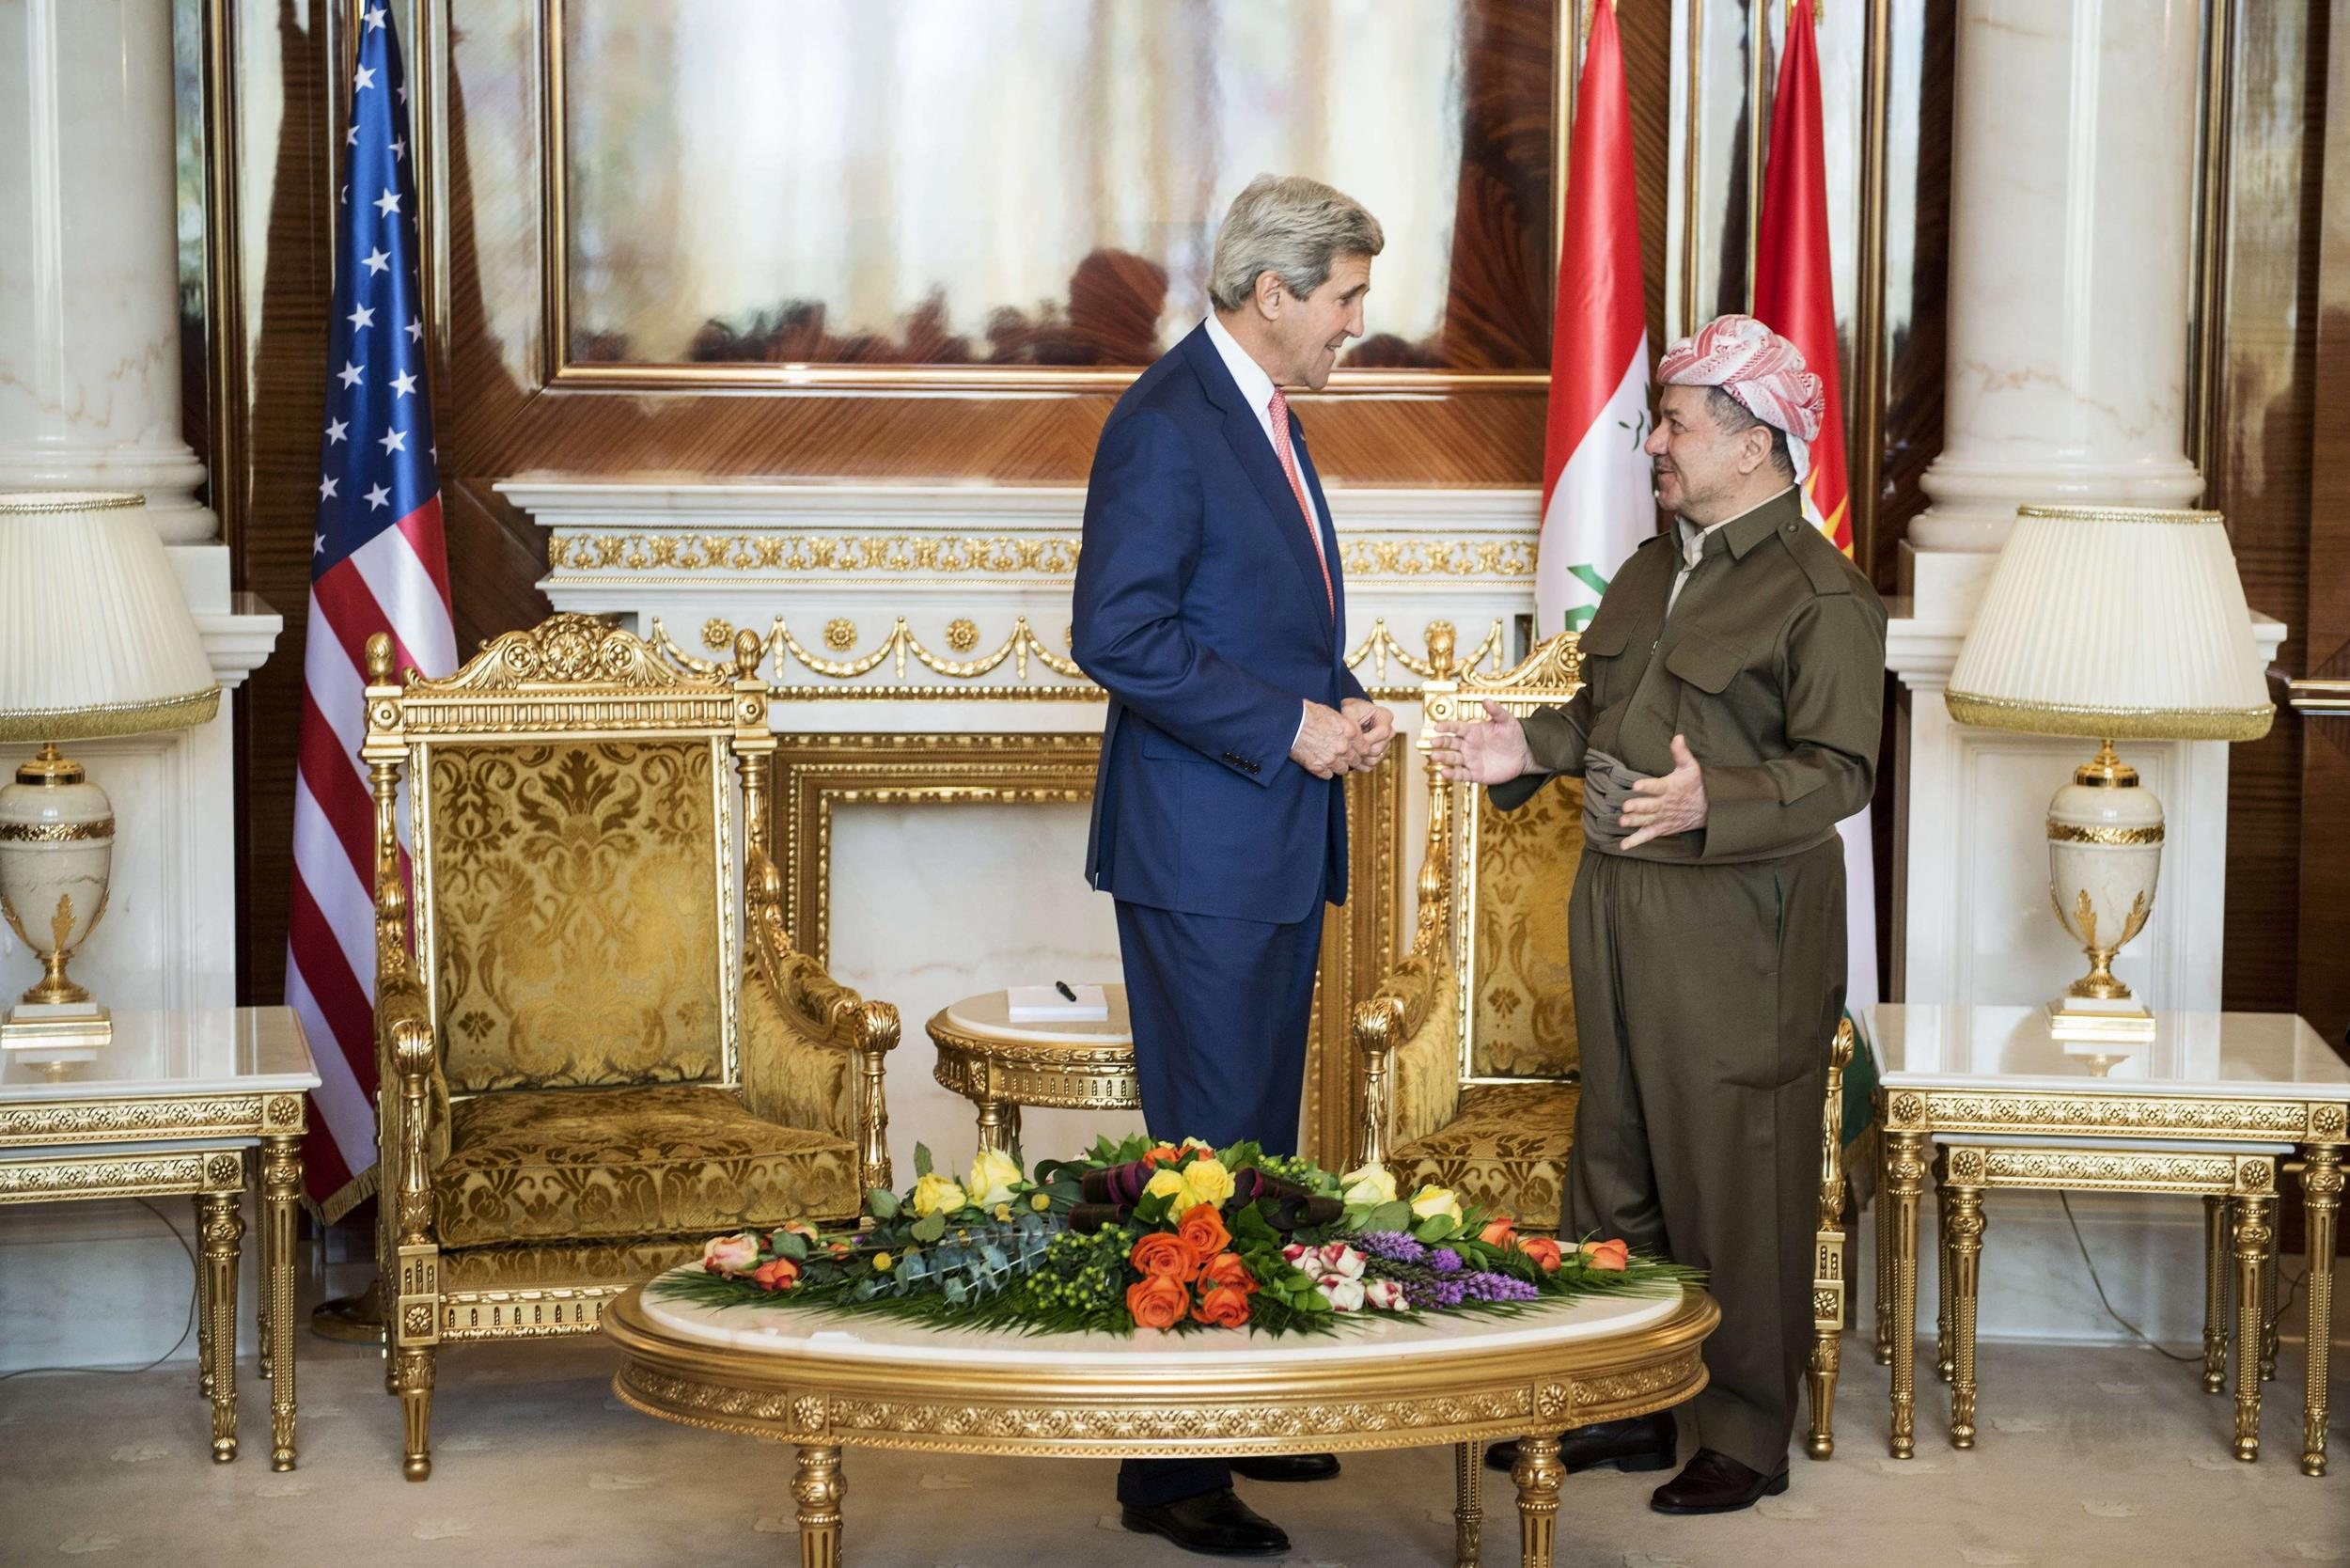 Image: Kurdistan Regional Government President Massud Barzani (R) and US Secretary of State John Kerry